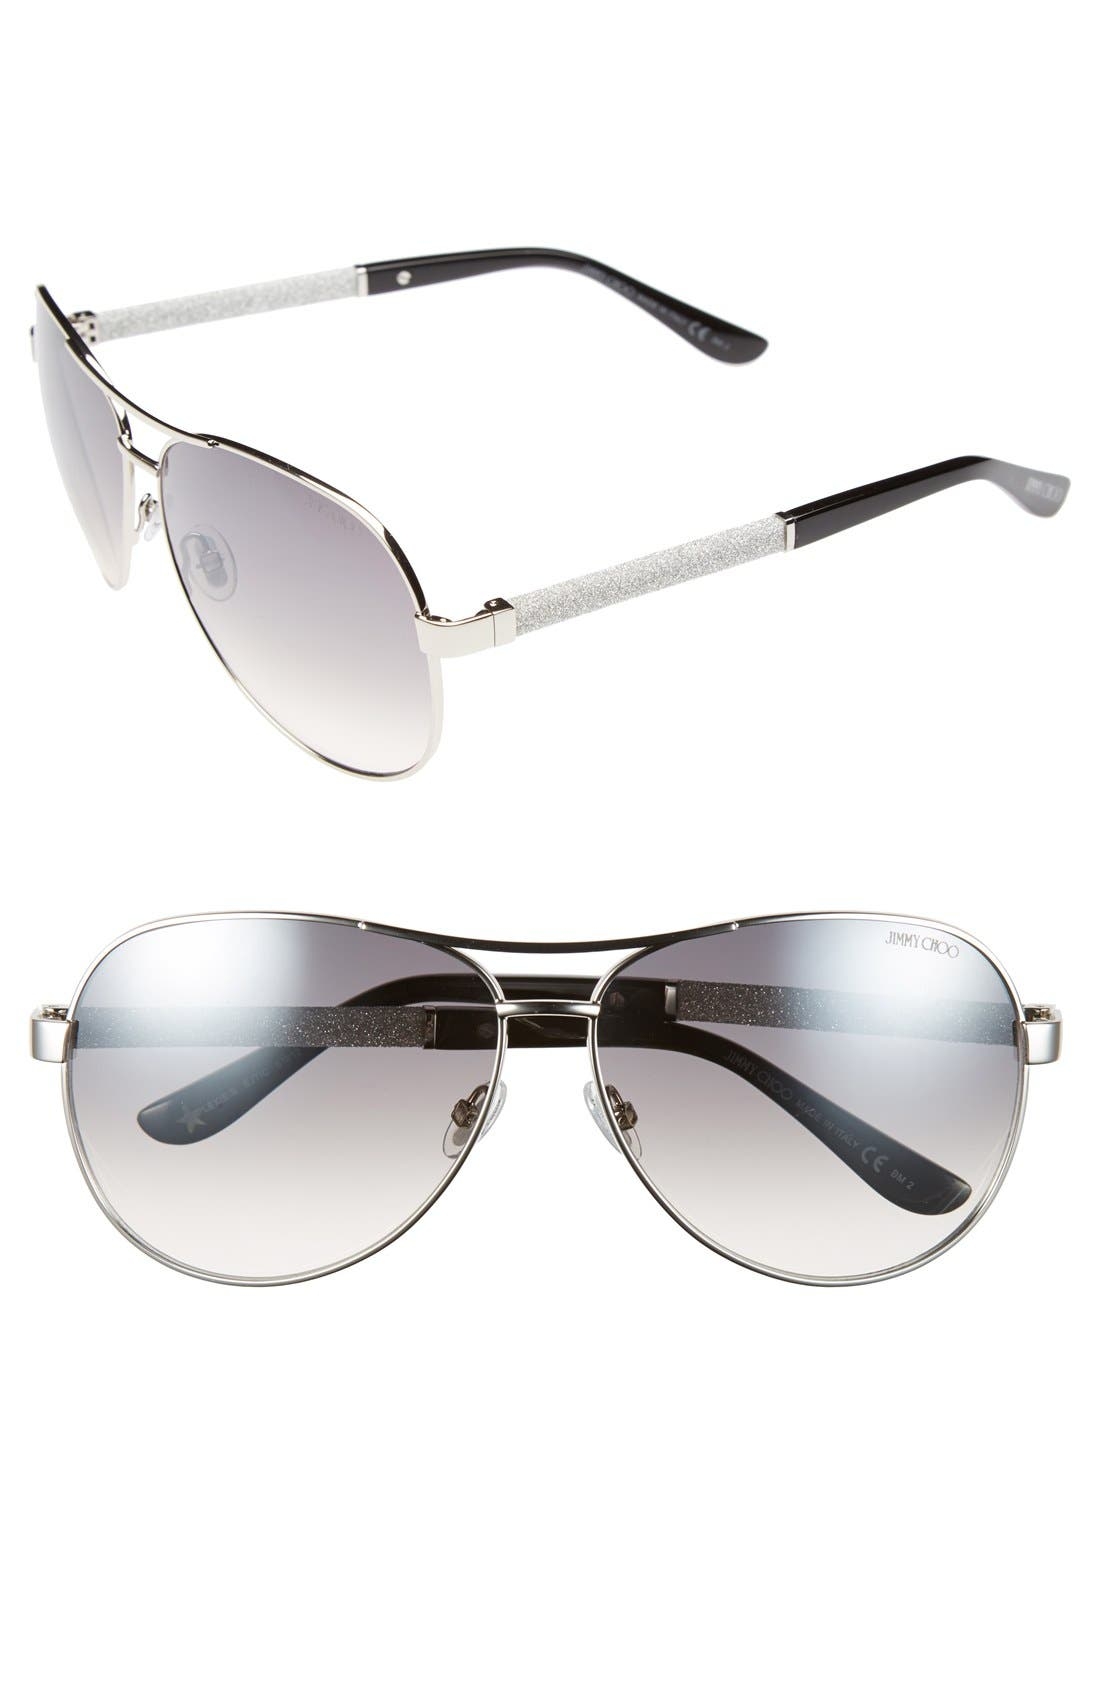 Main Image - Jimmy Choo 61mm Aviator Sunglasses